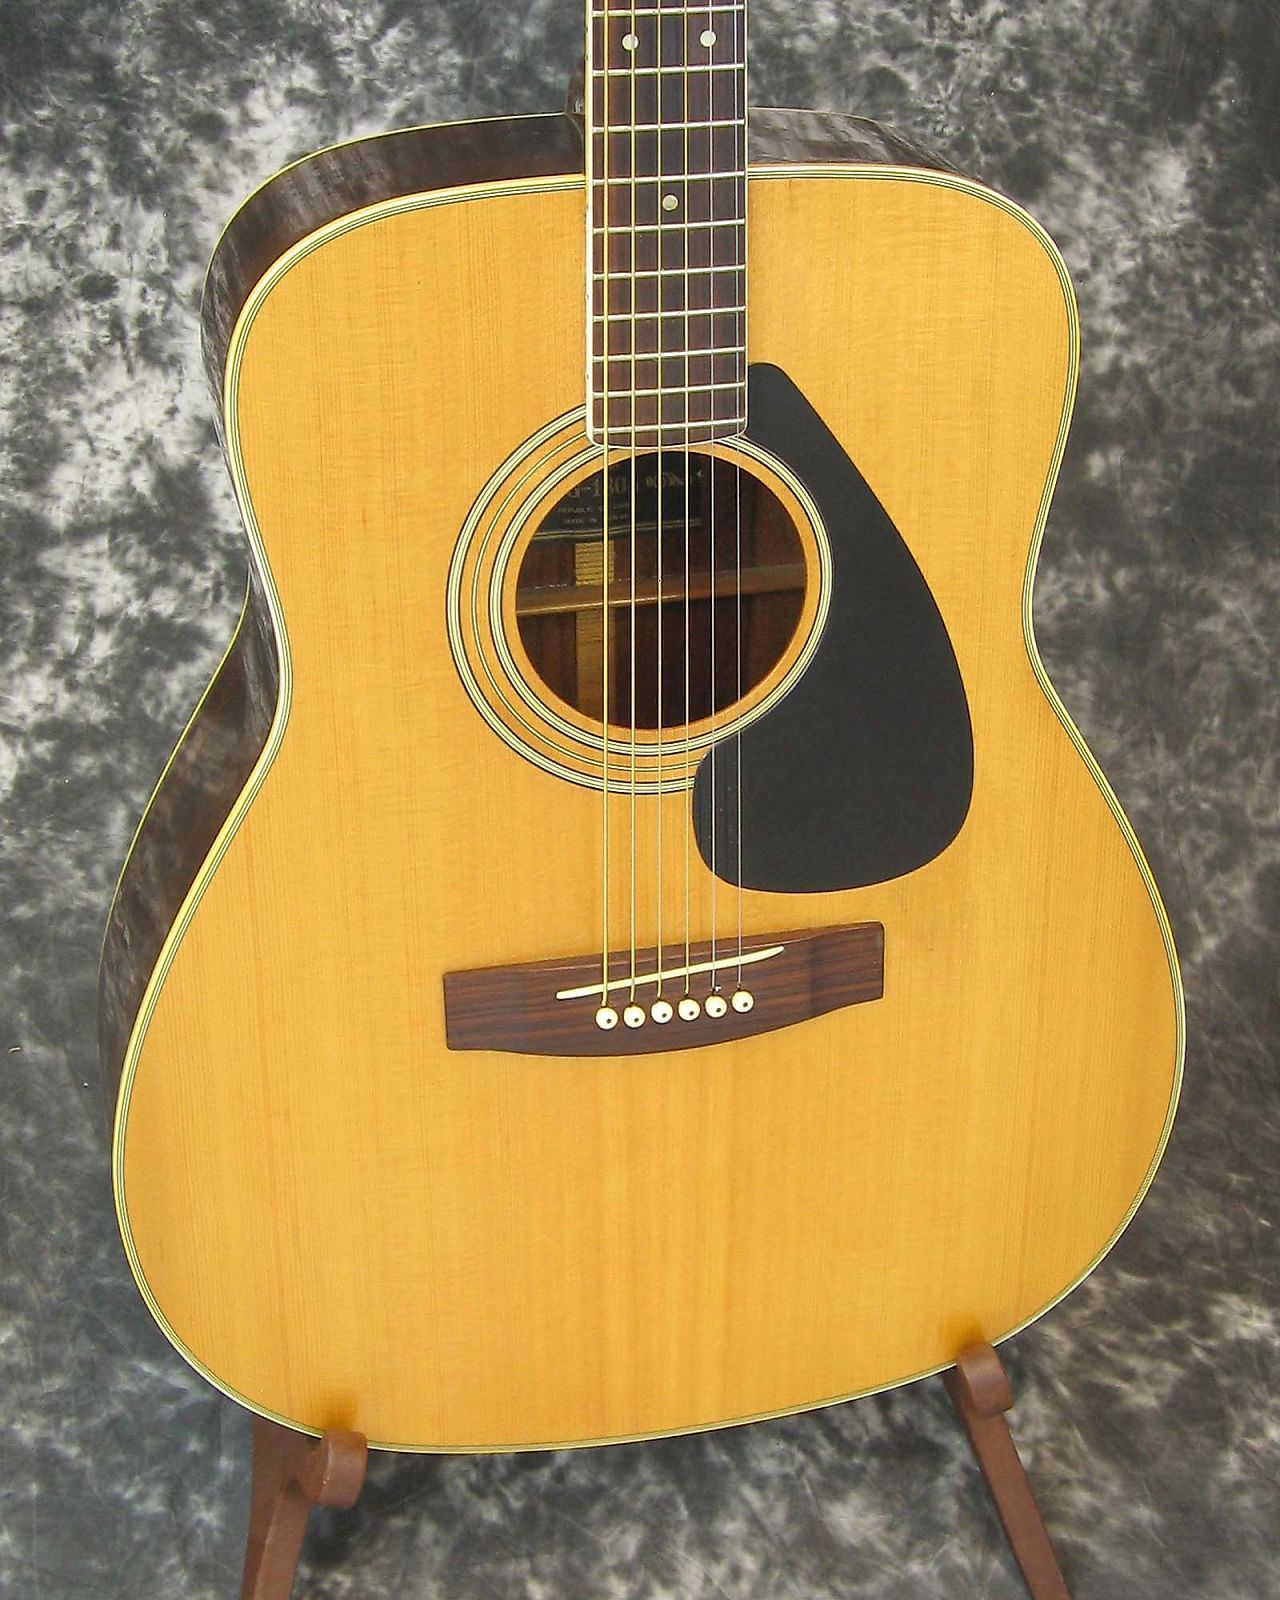 good vintage yamaha fg 180 1 acoustic guitar w chipboard case. Black Bedroom Furniture Sets. Home Design Ideas